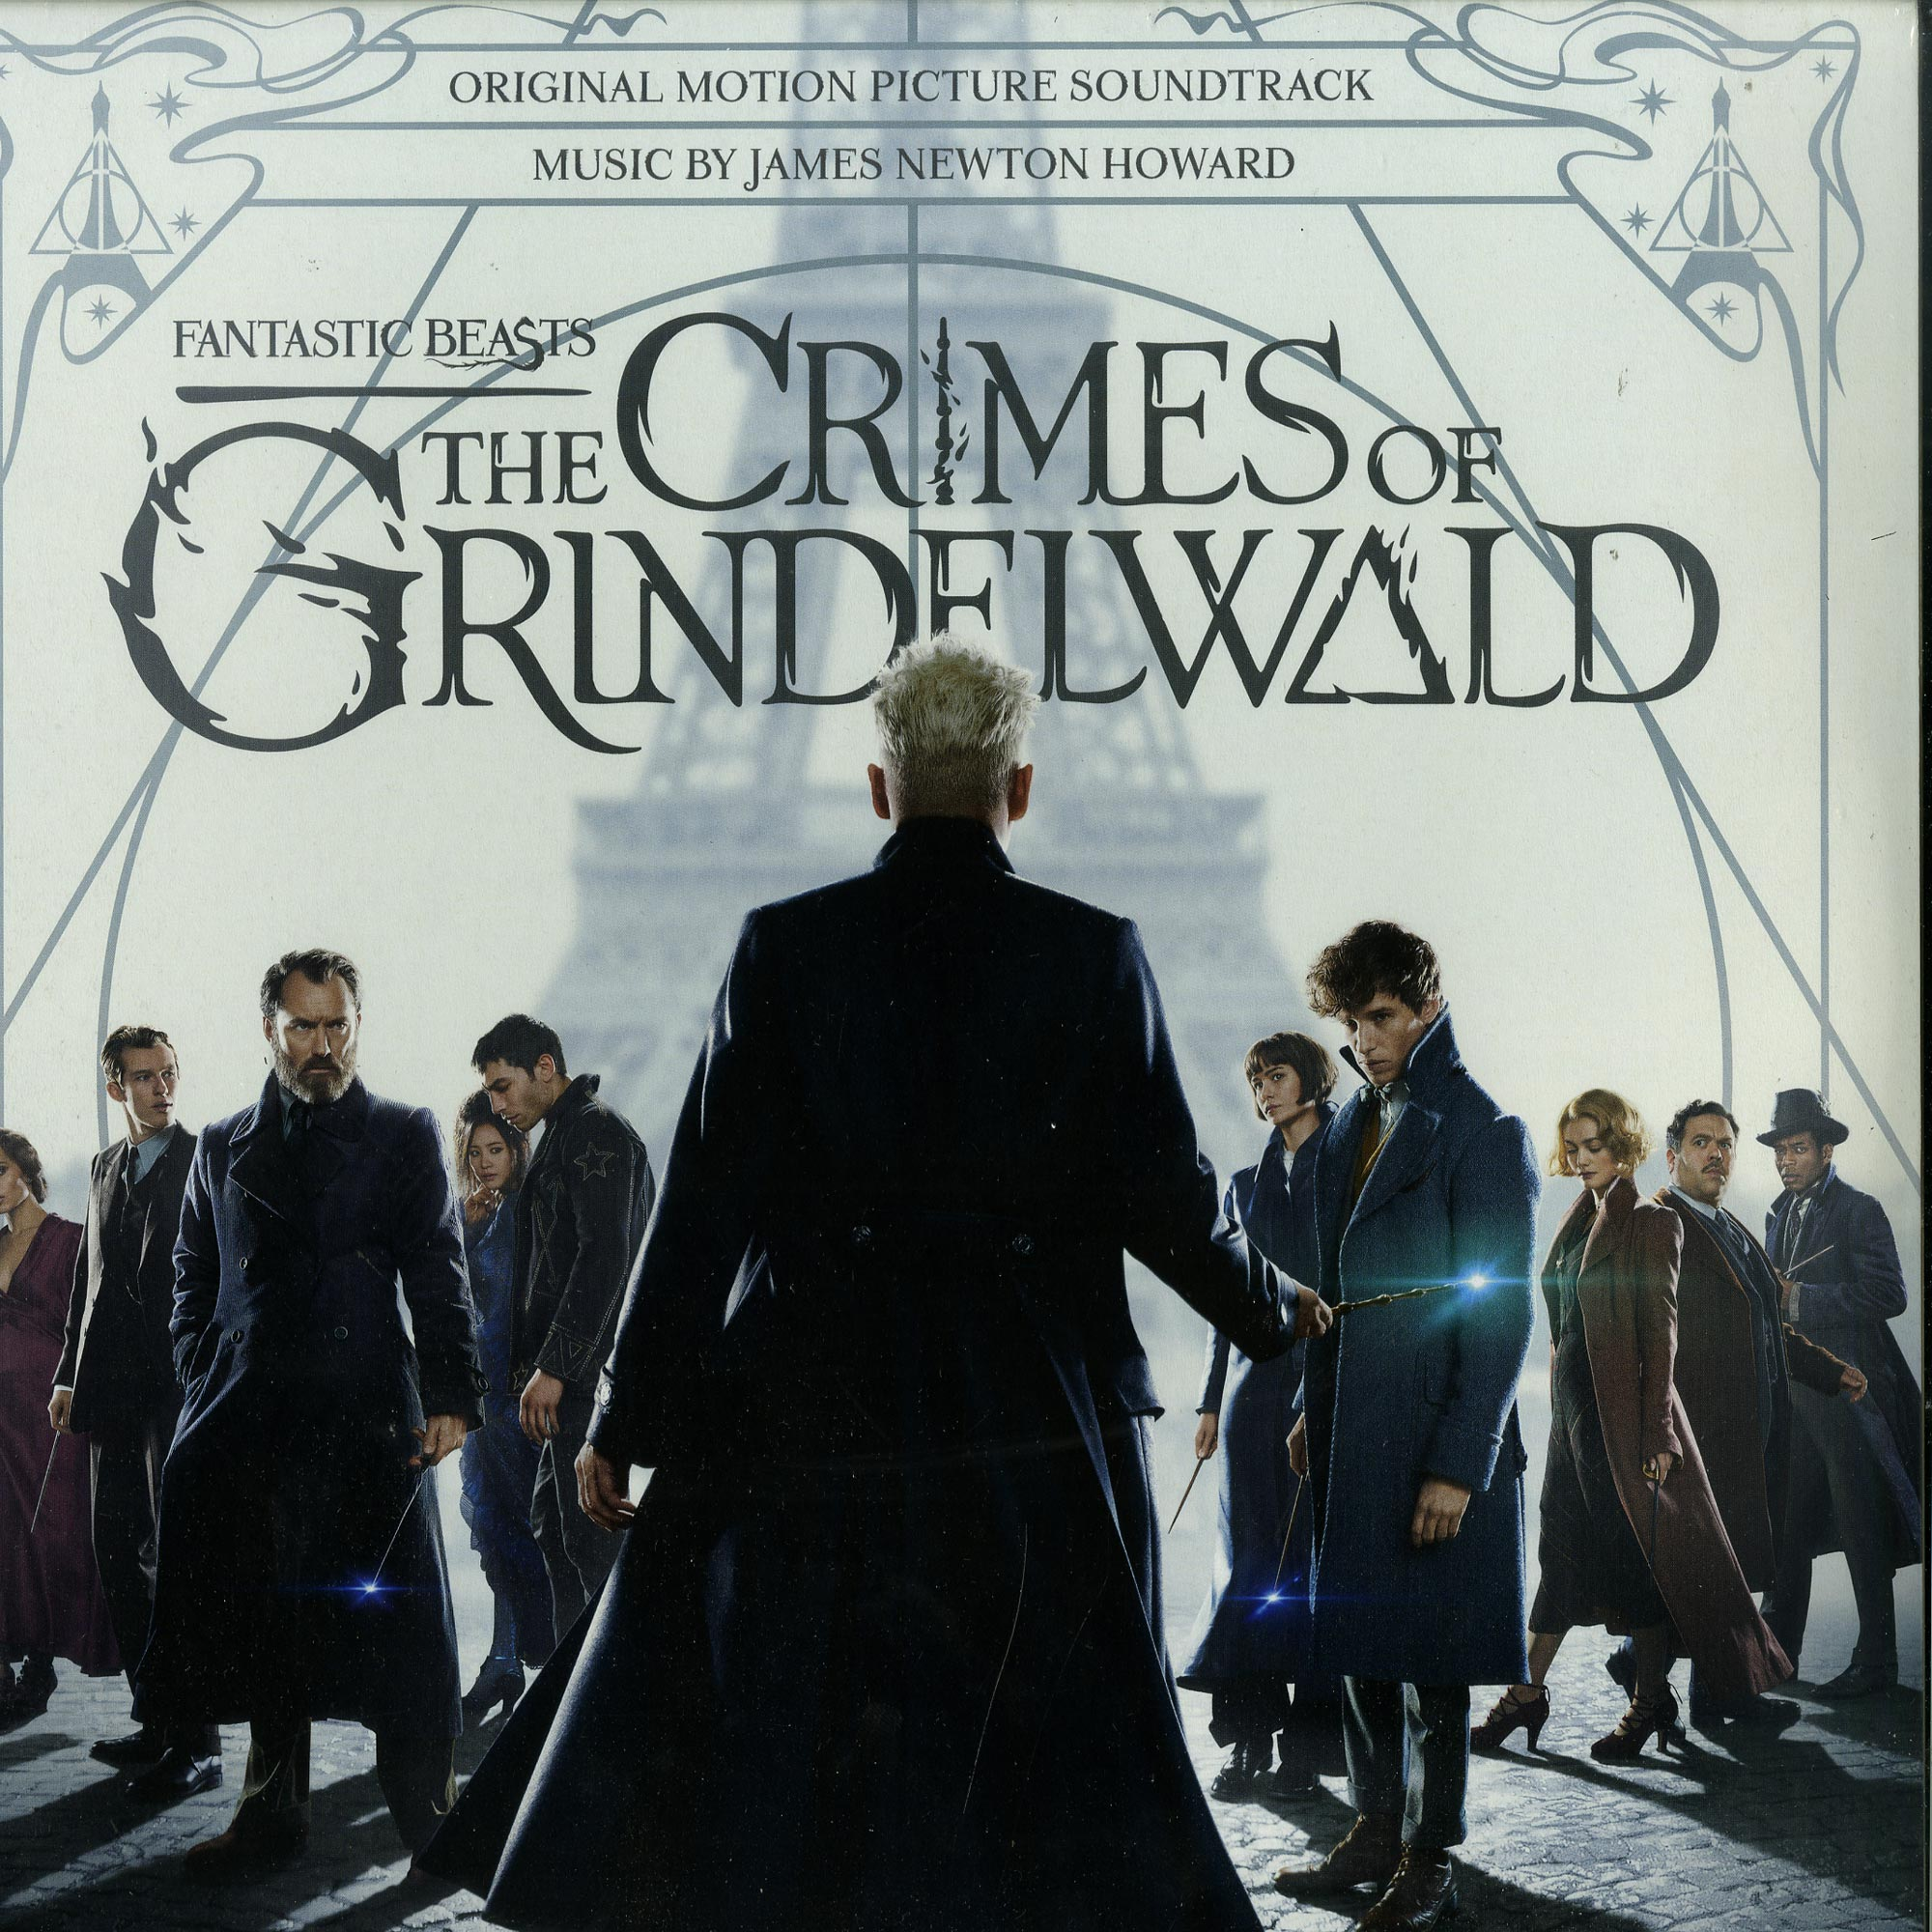 James Newton Howard - FANTASTIC BEASTS: THE CRIMES OF GRINDELWALD O.S.T.